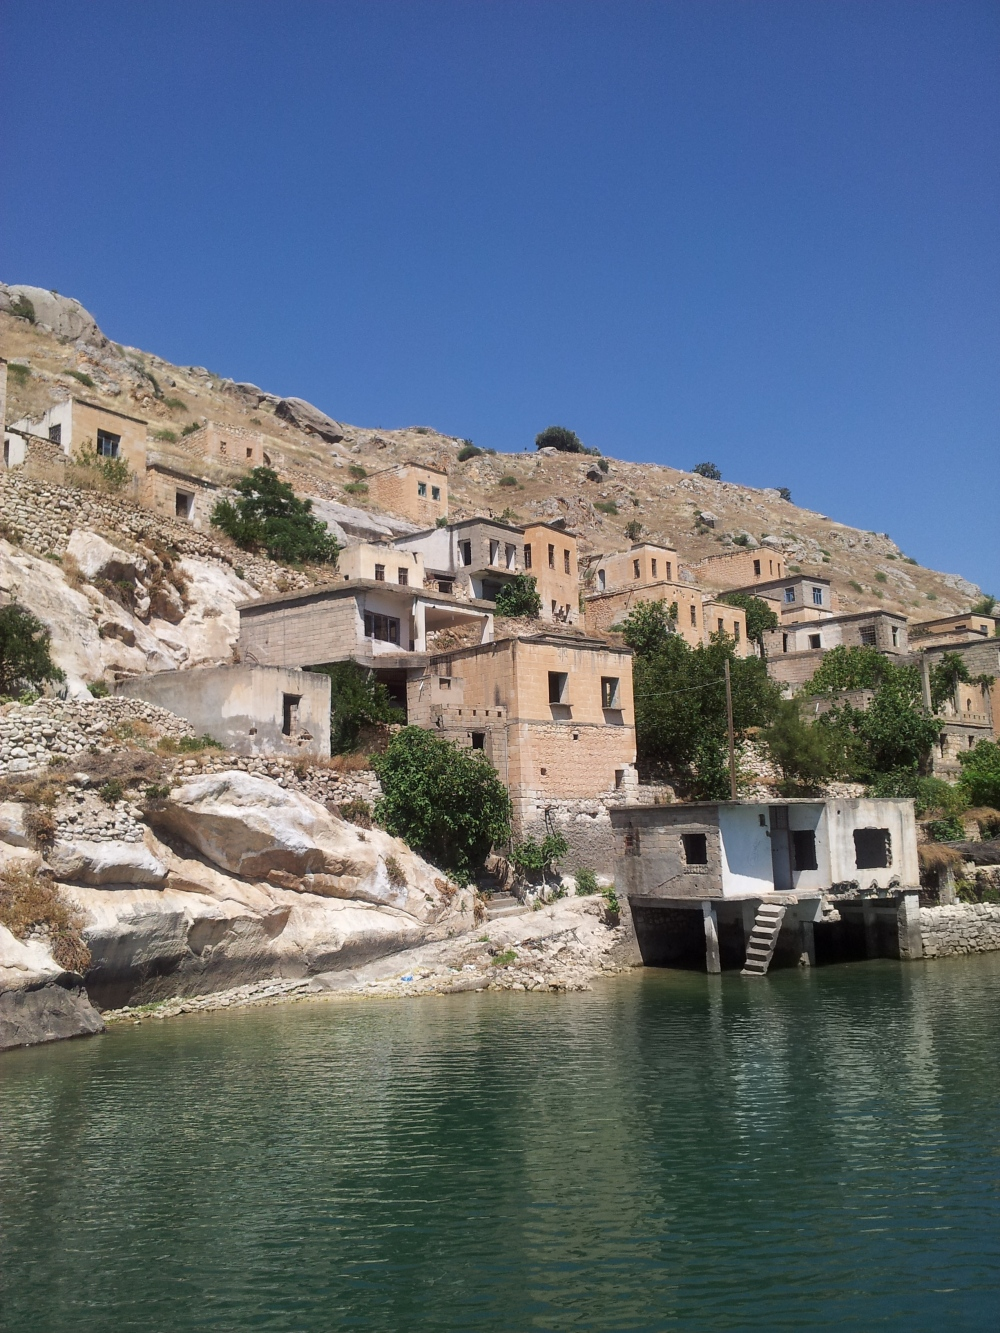 Savaşan Köyü is now a ghost village except for 2 families who still live there.